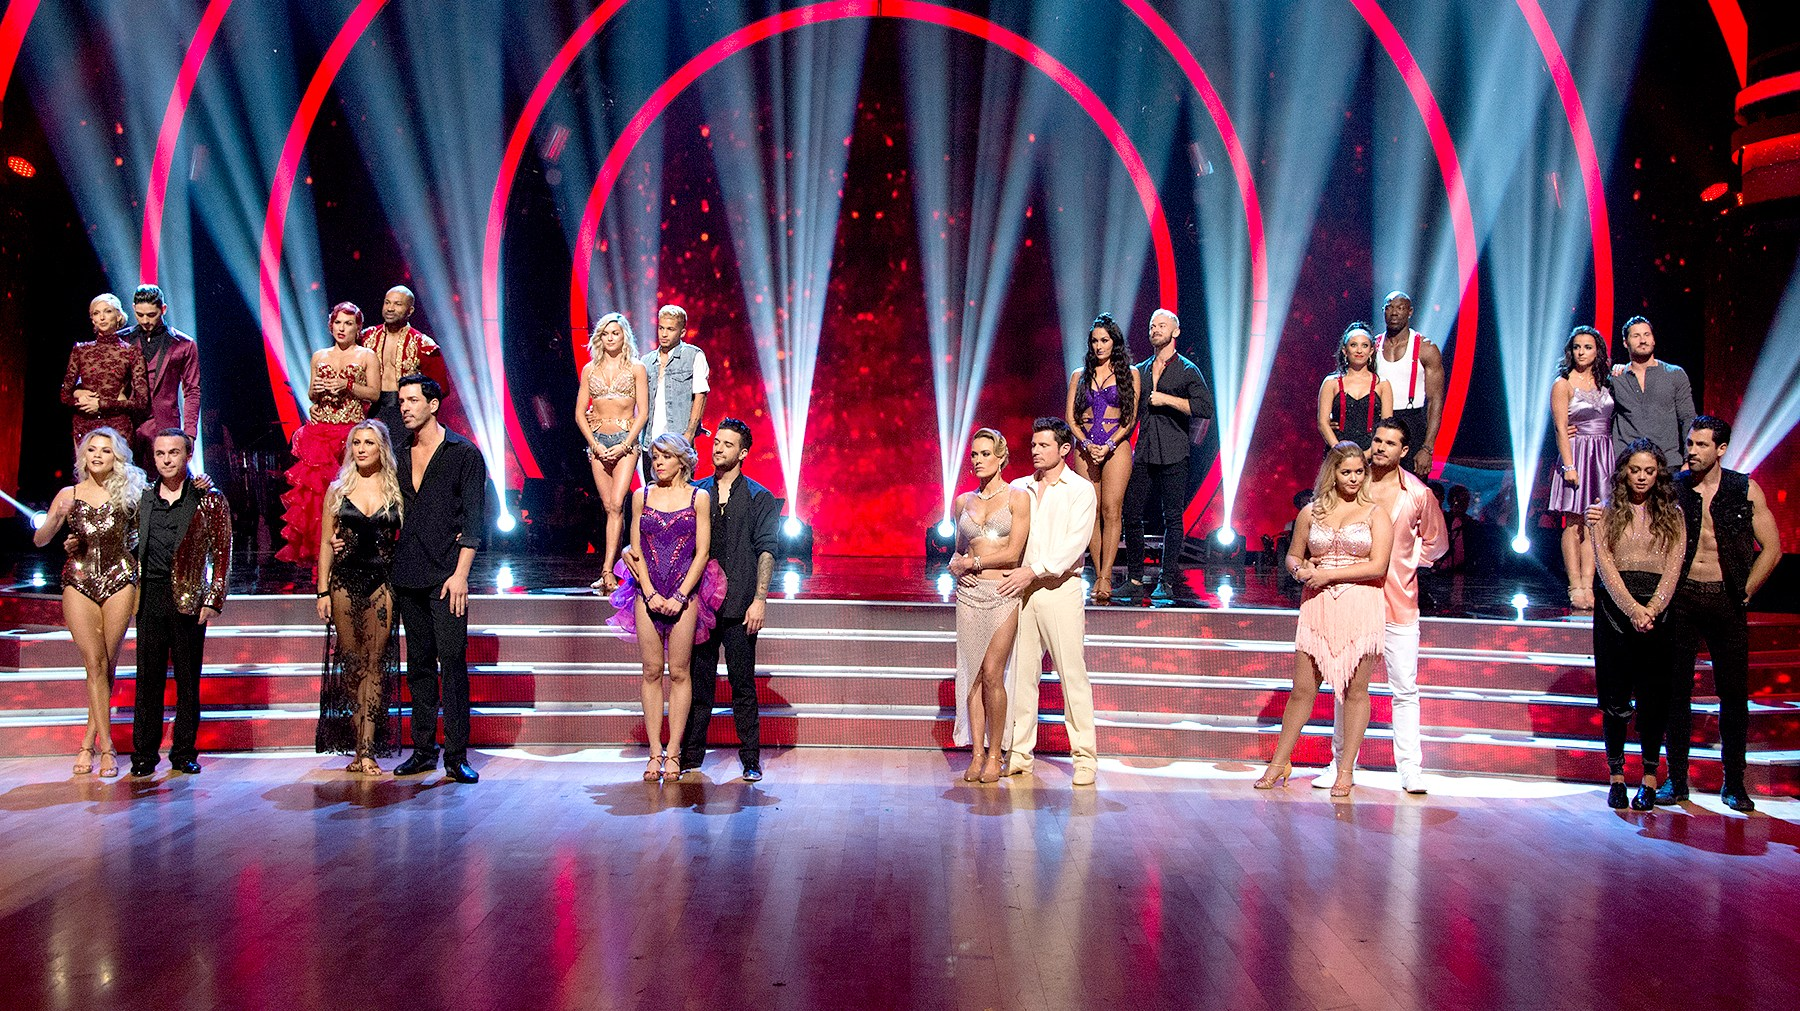 The cast of Dancing with the Stars.